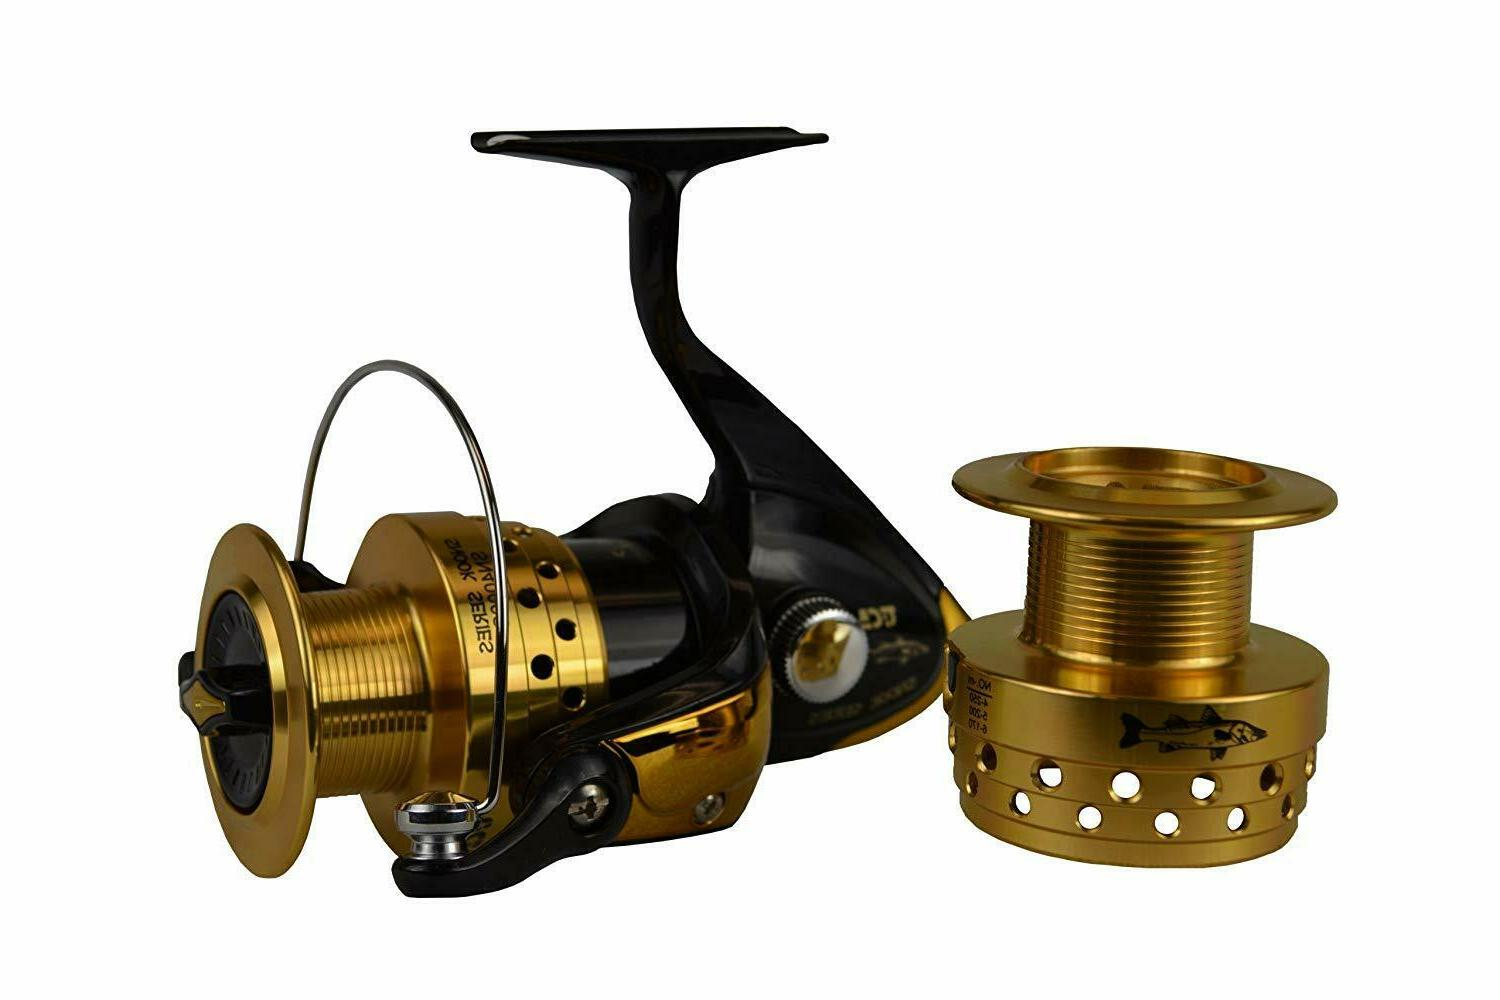 sn4000s snook fish collector spinning